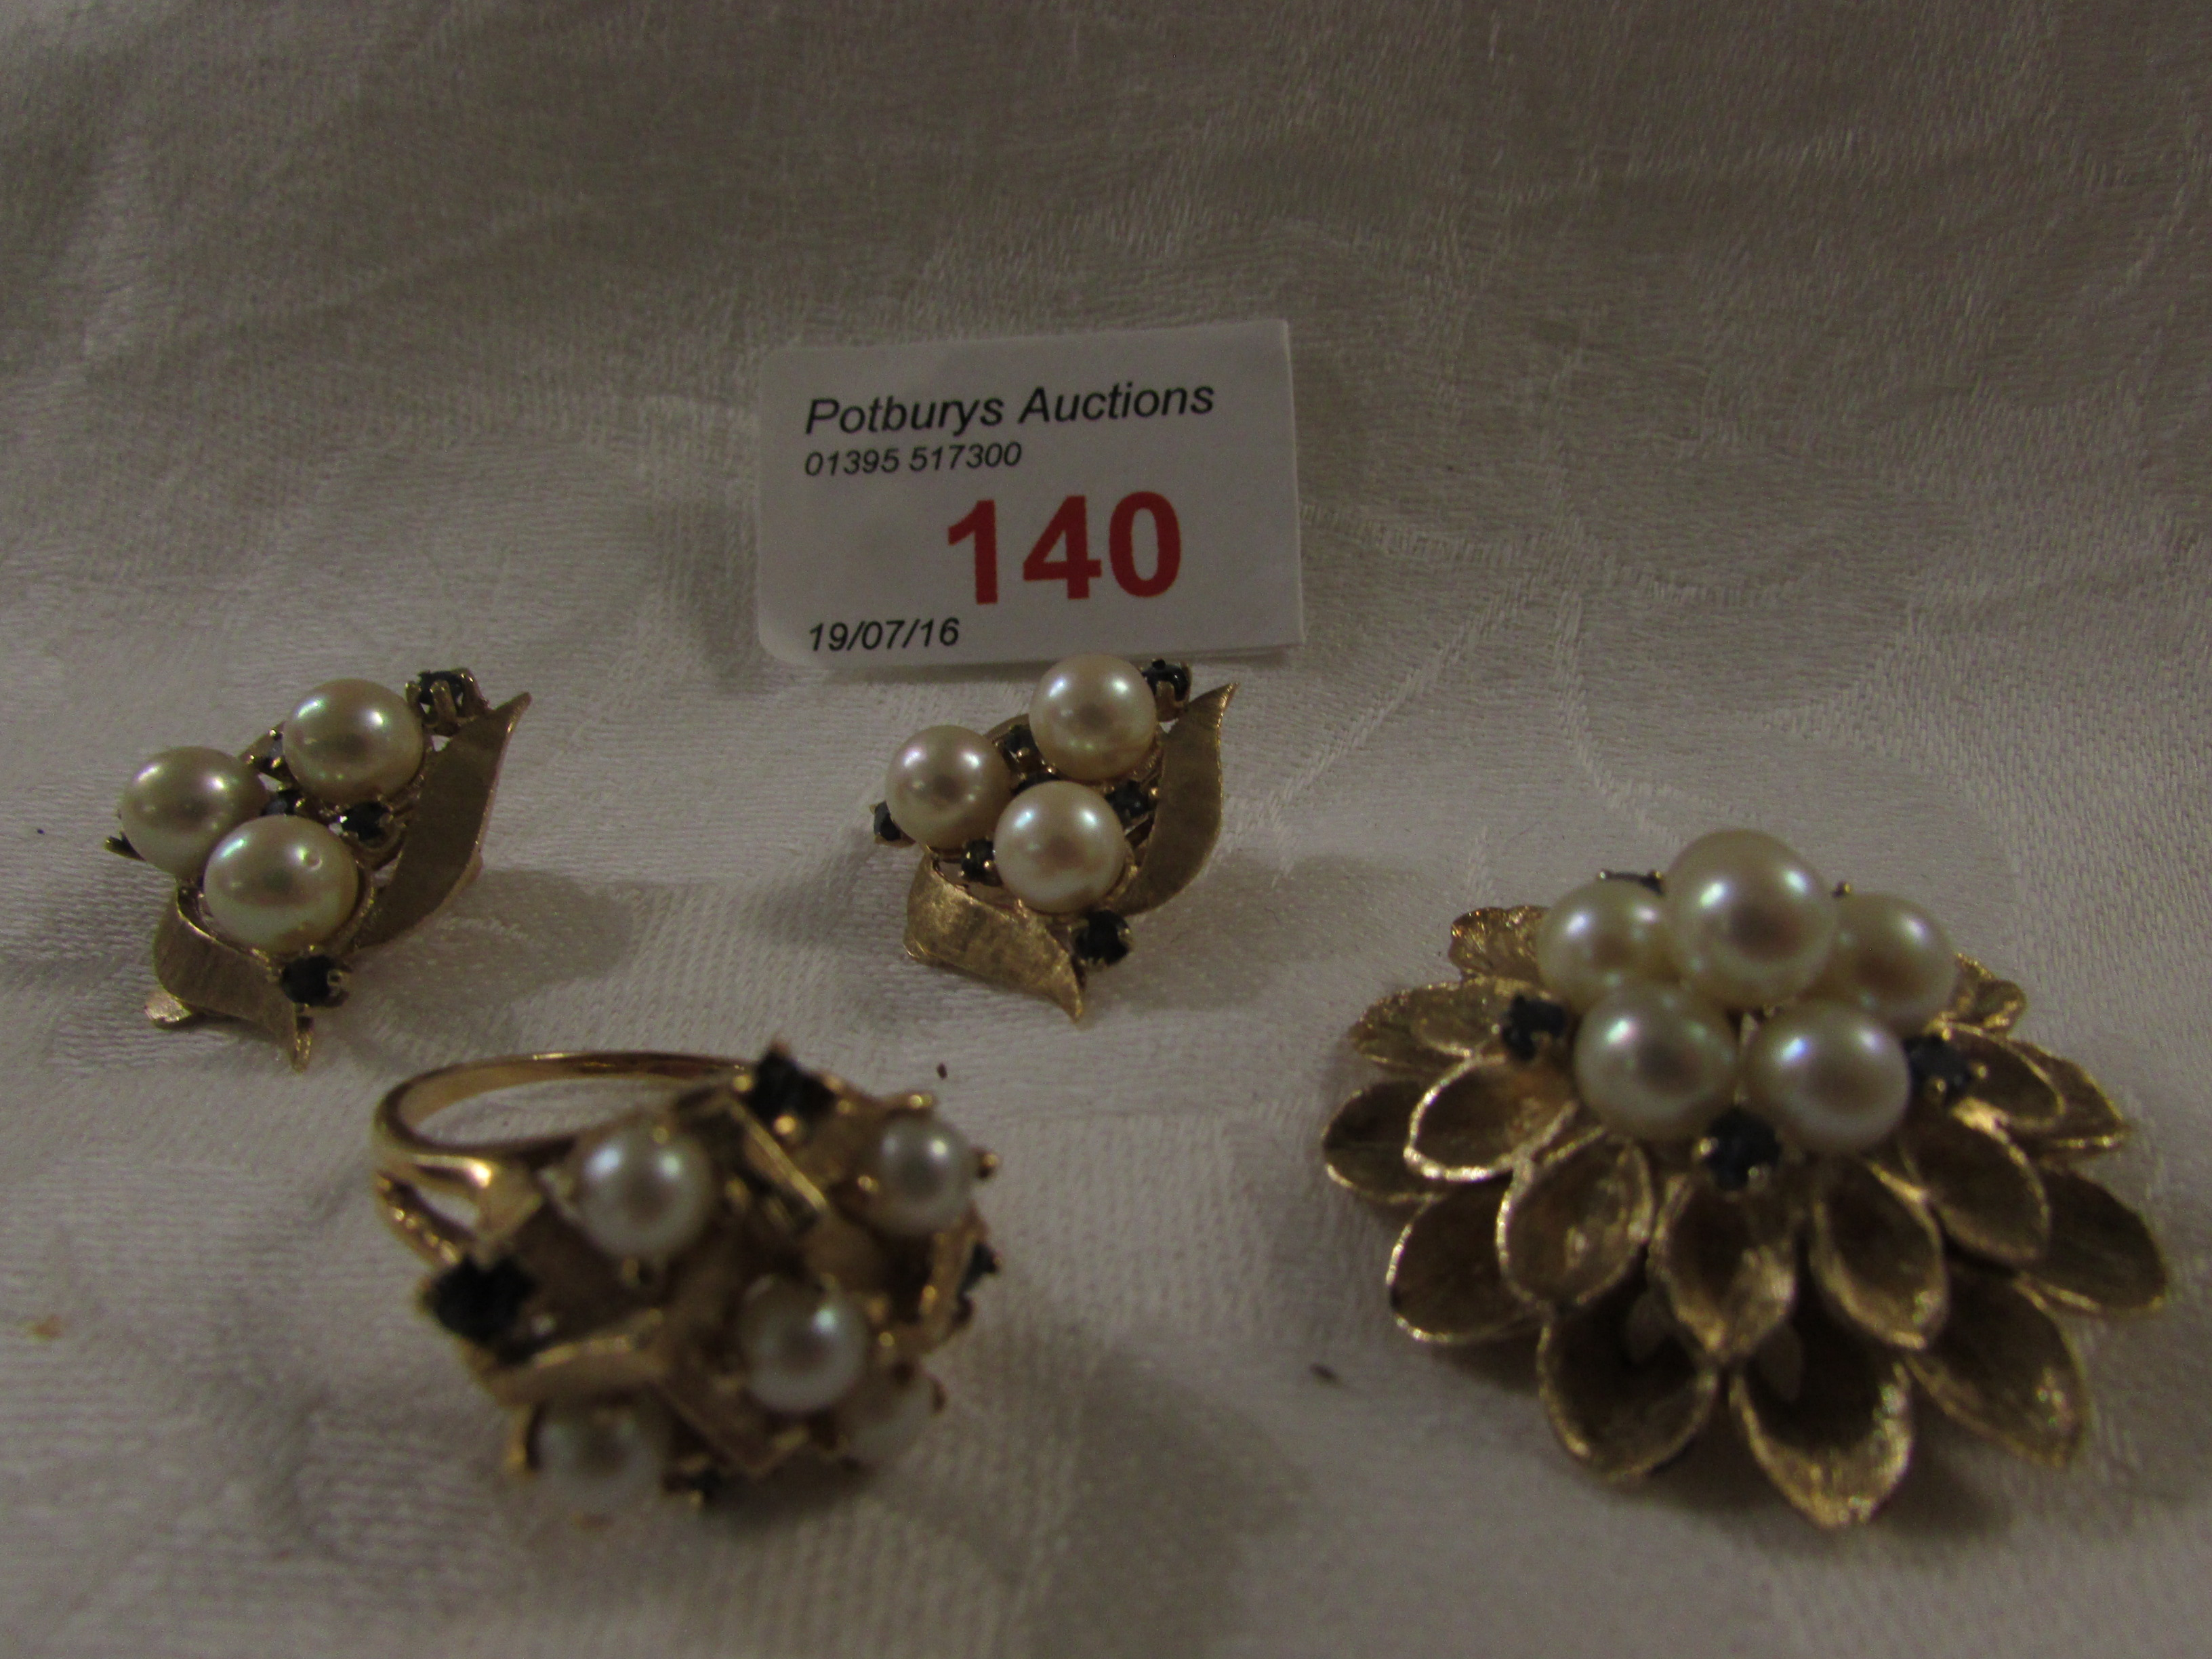 Lot 140 - A gold floret brooch (diameter 3.3cm) stamped 14K set with six cultured pearls and five small blue